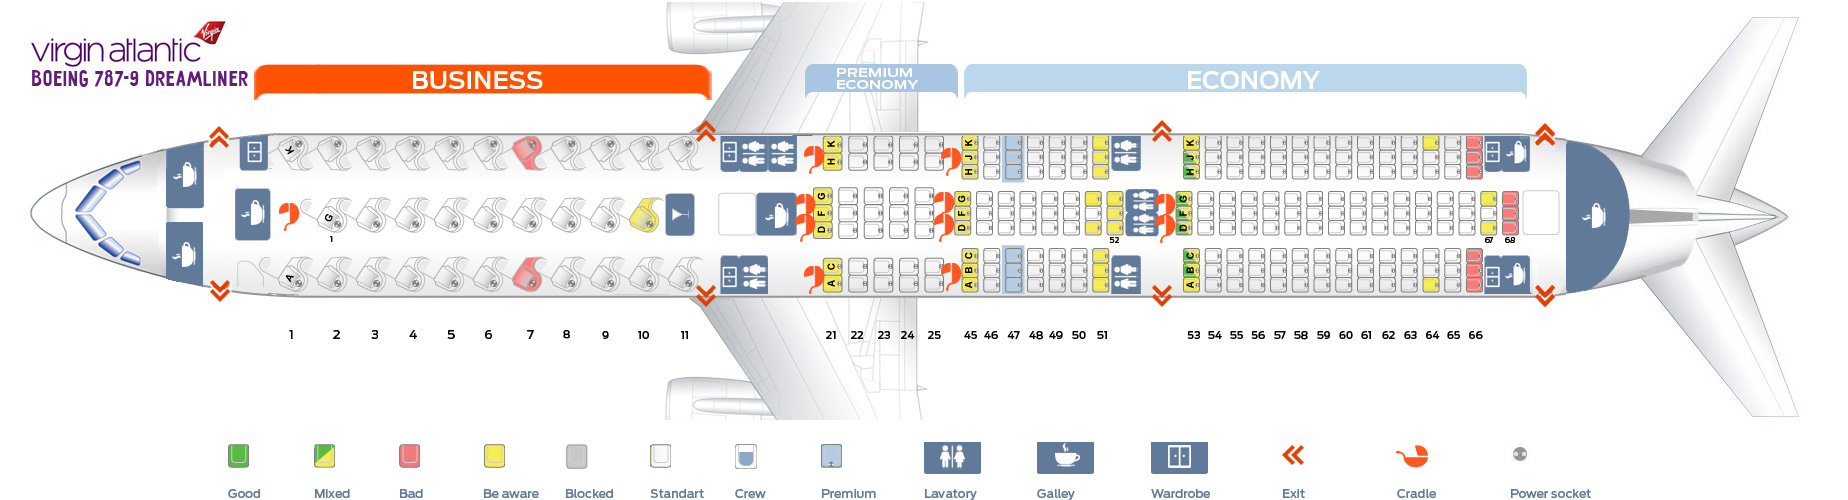 Seat map boeing 787 9 dreamliner virgin atlantic best seats in plane